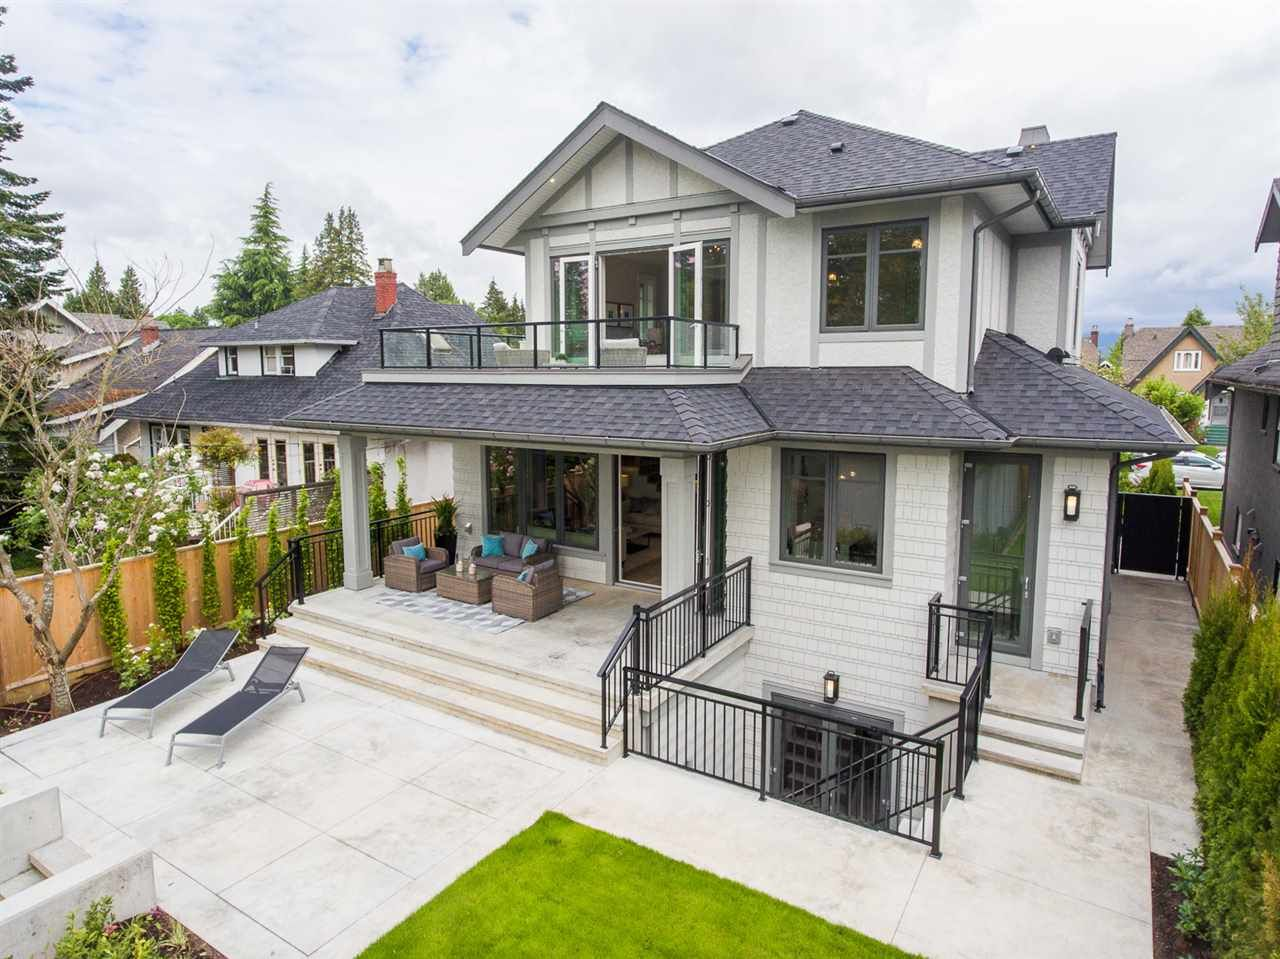 """Photo 28: Photos: 2816 W 30TH Avenue in Vancouver: MacKenzie Heights House for sale in """"MACKENZIE HEIGHTS"""" (Vancouver West)  : MLS®# R2456722"""